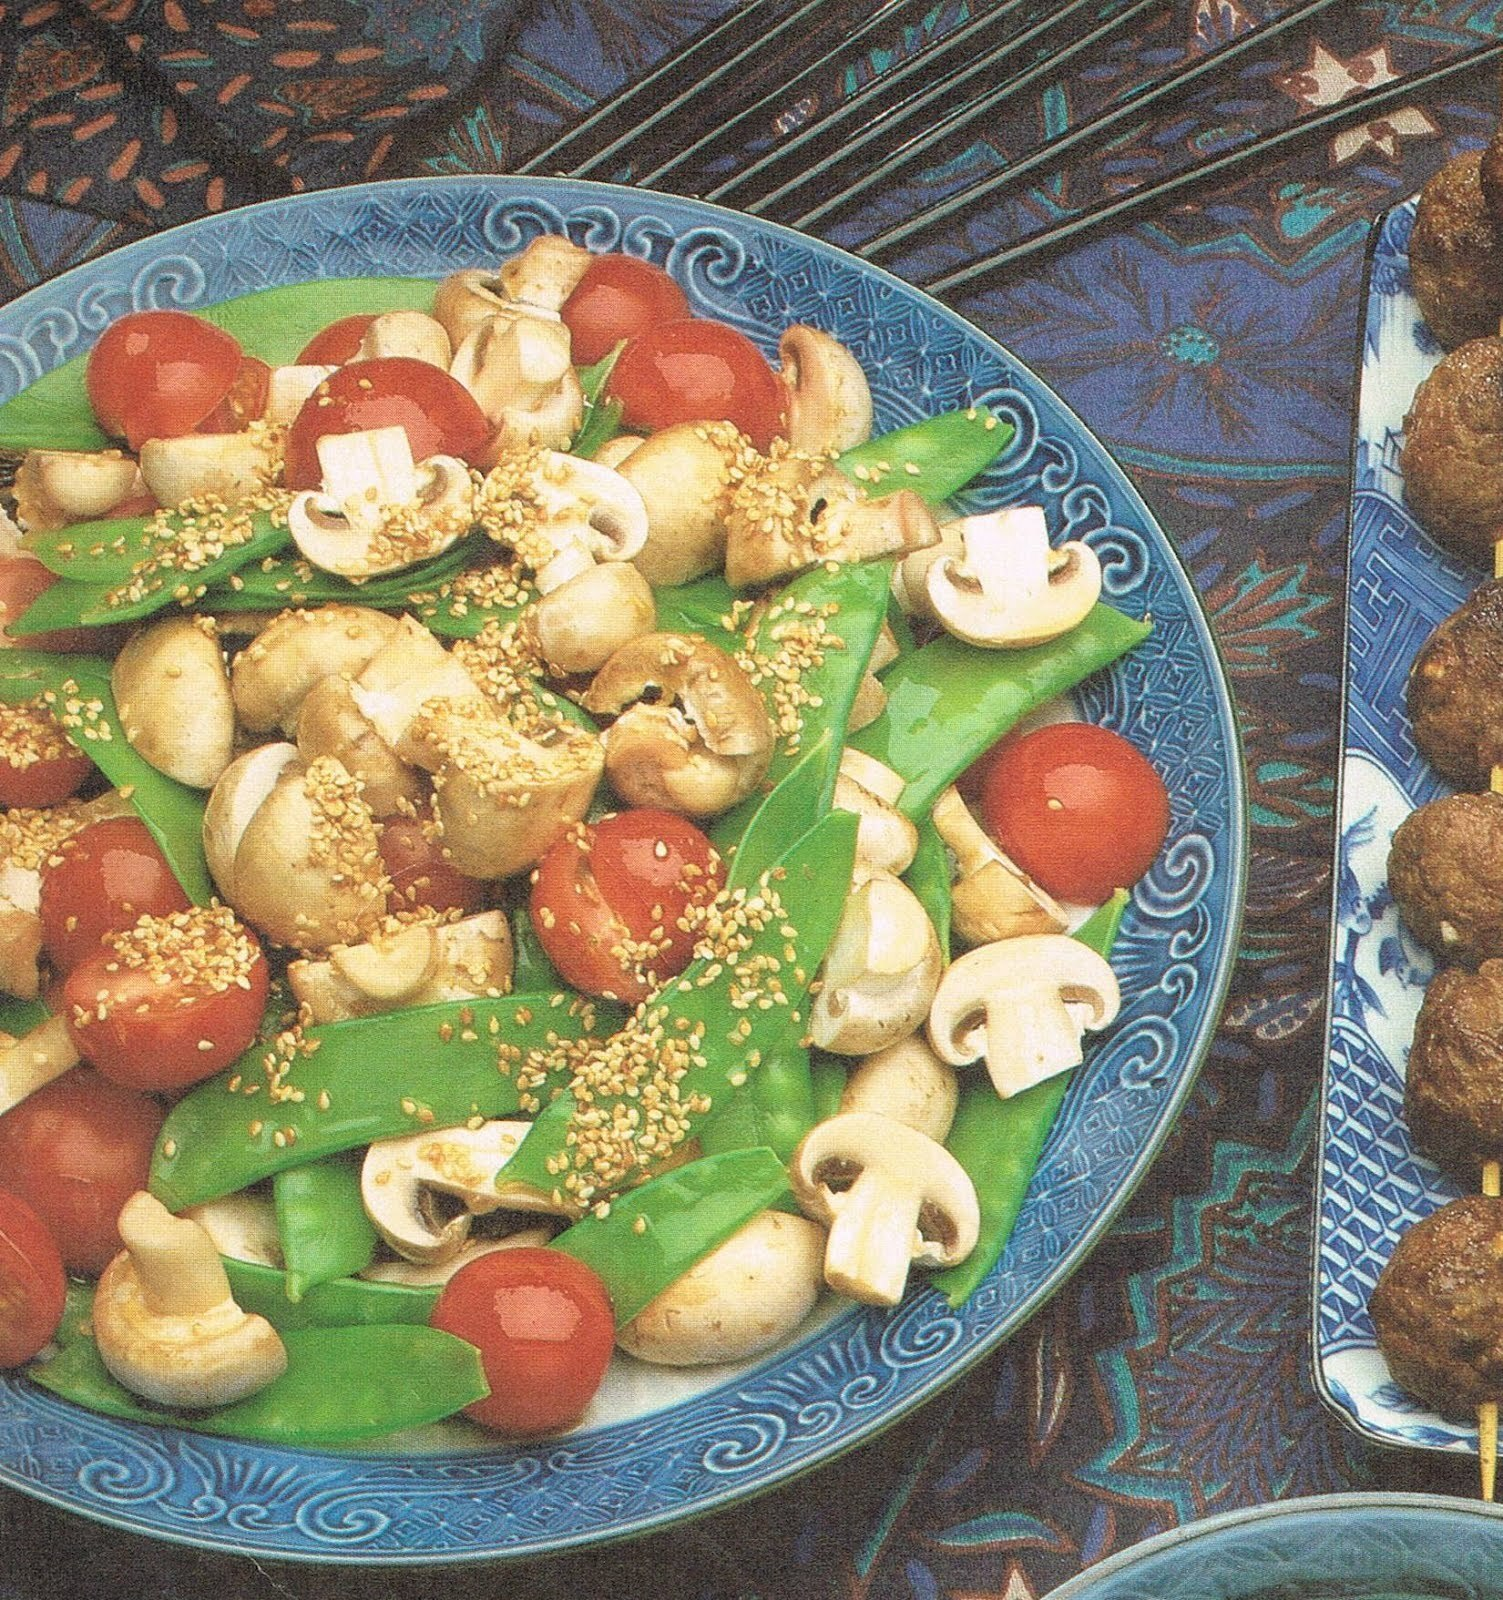 Snow Peas and Mushrooms with Tangy Dressing